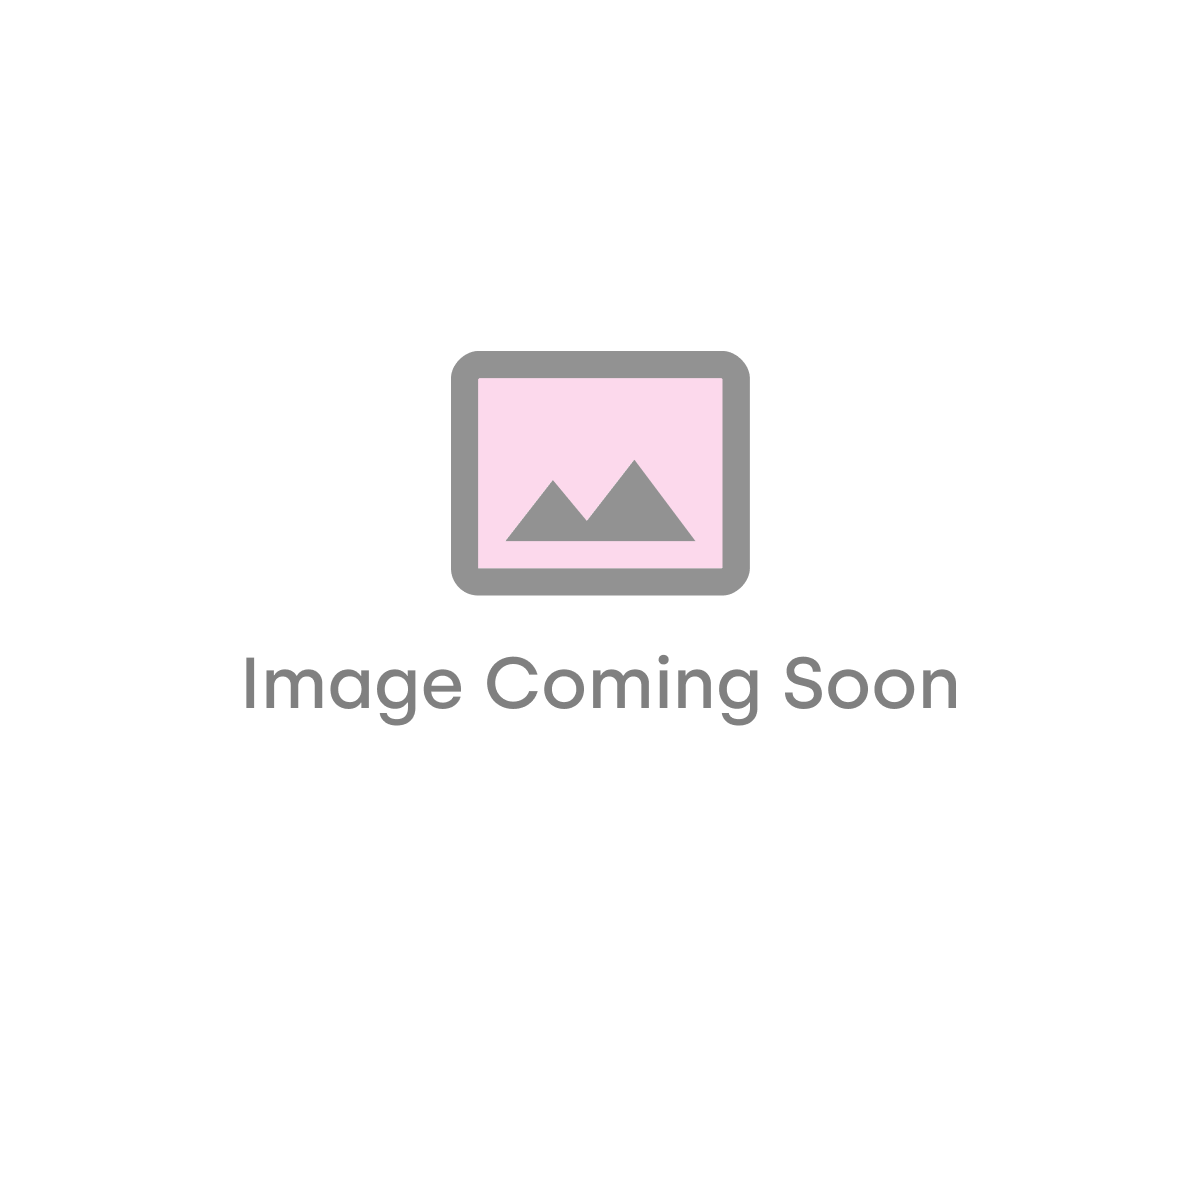 Roma Straight Heated Towel Rail  - 1200mm x 600mm - White (19724)